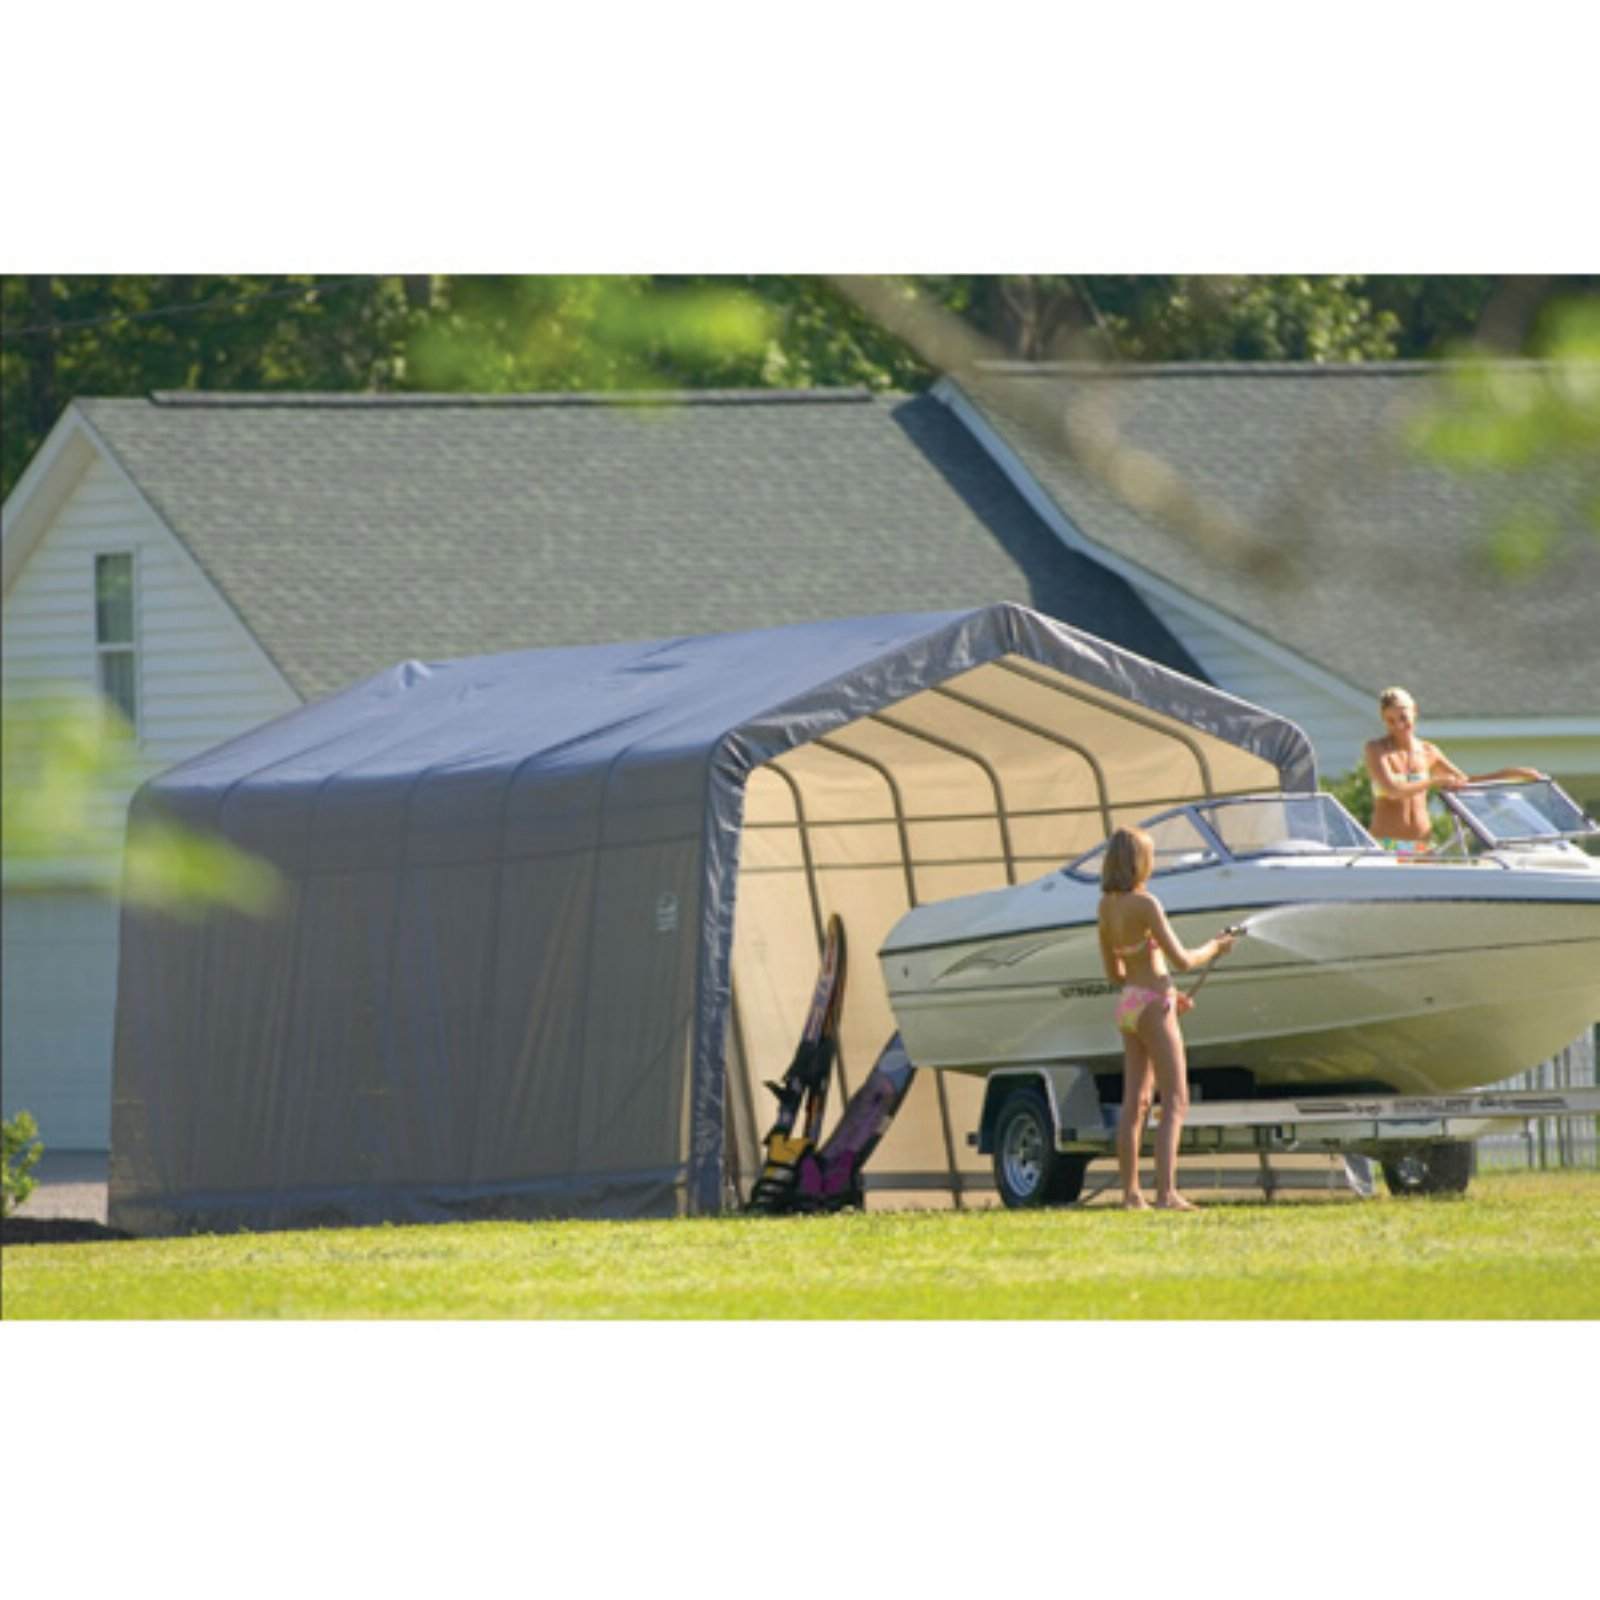 Shelterlogic 13' x 24' x 10' Peak Style Carport Shelter